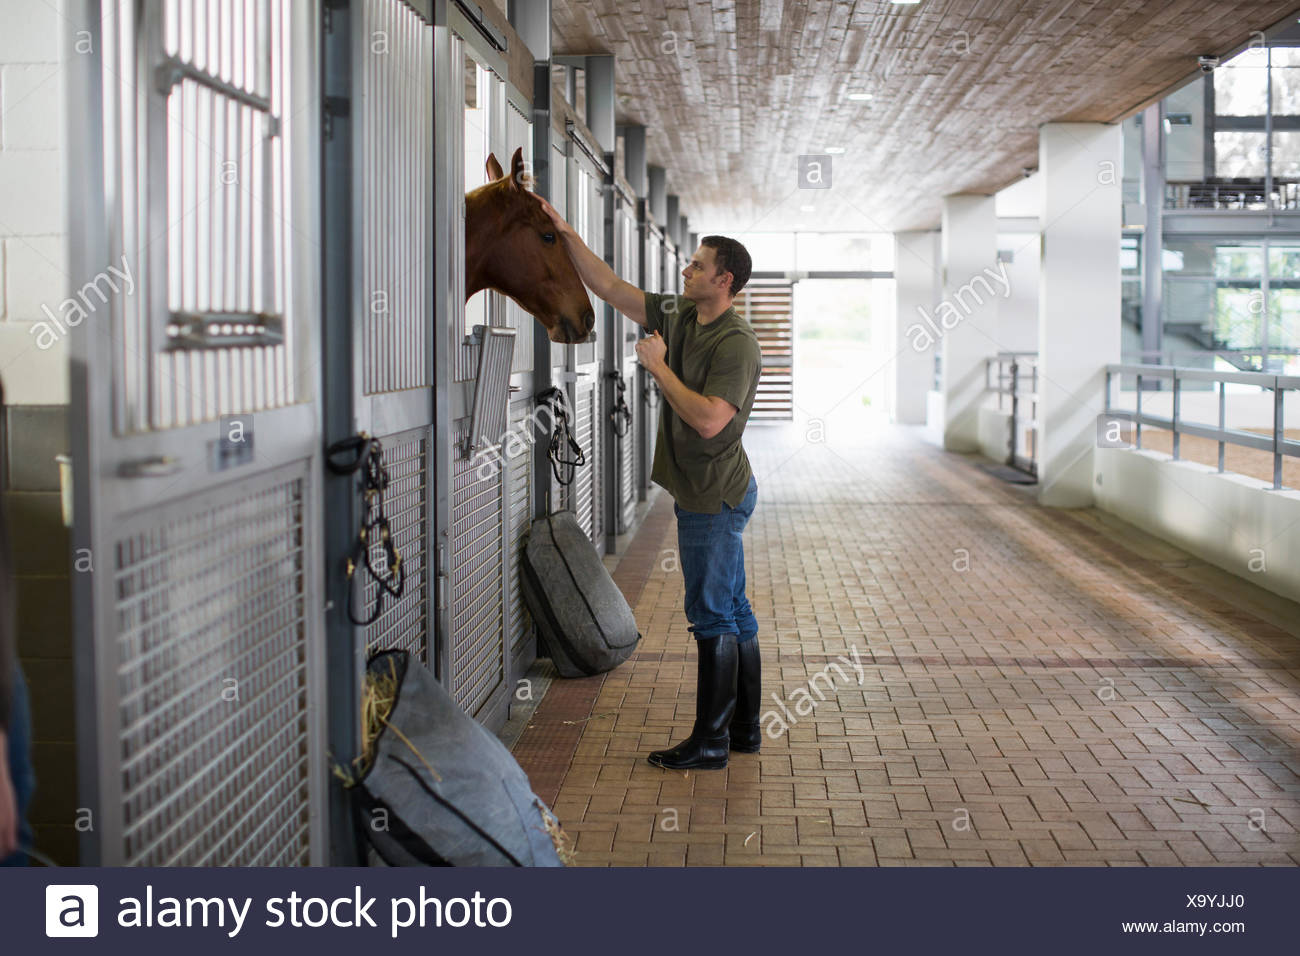 Male stablehand petting horse in stables - Stock Image